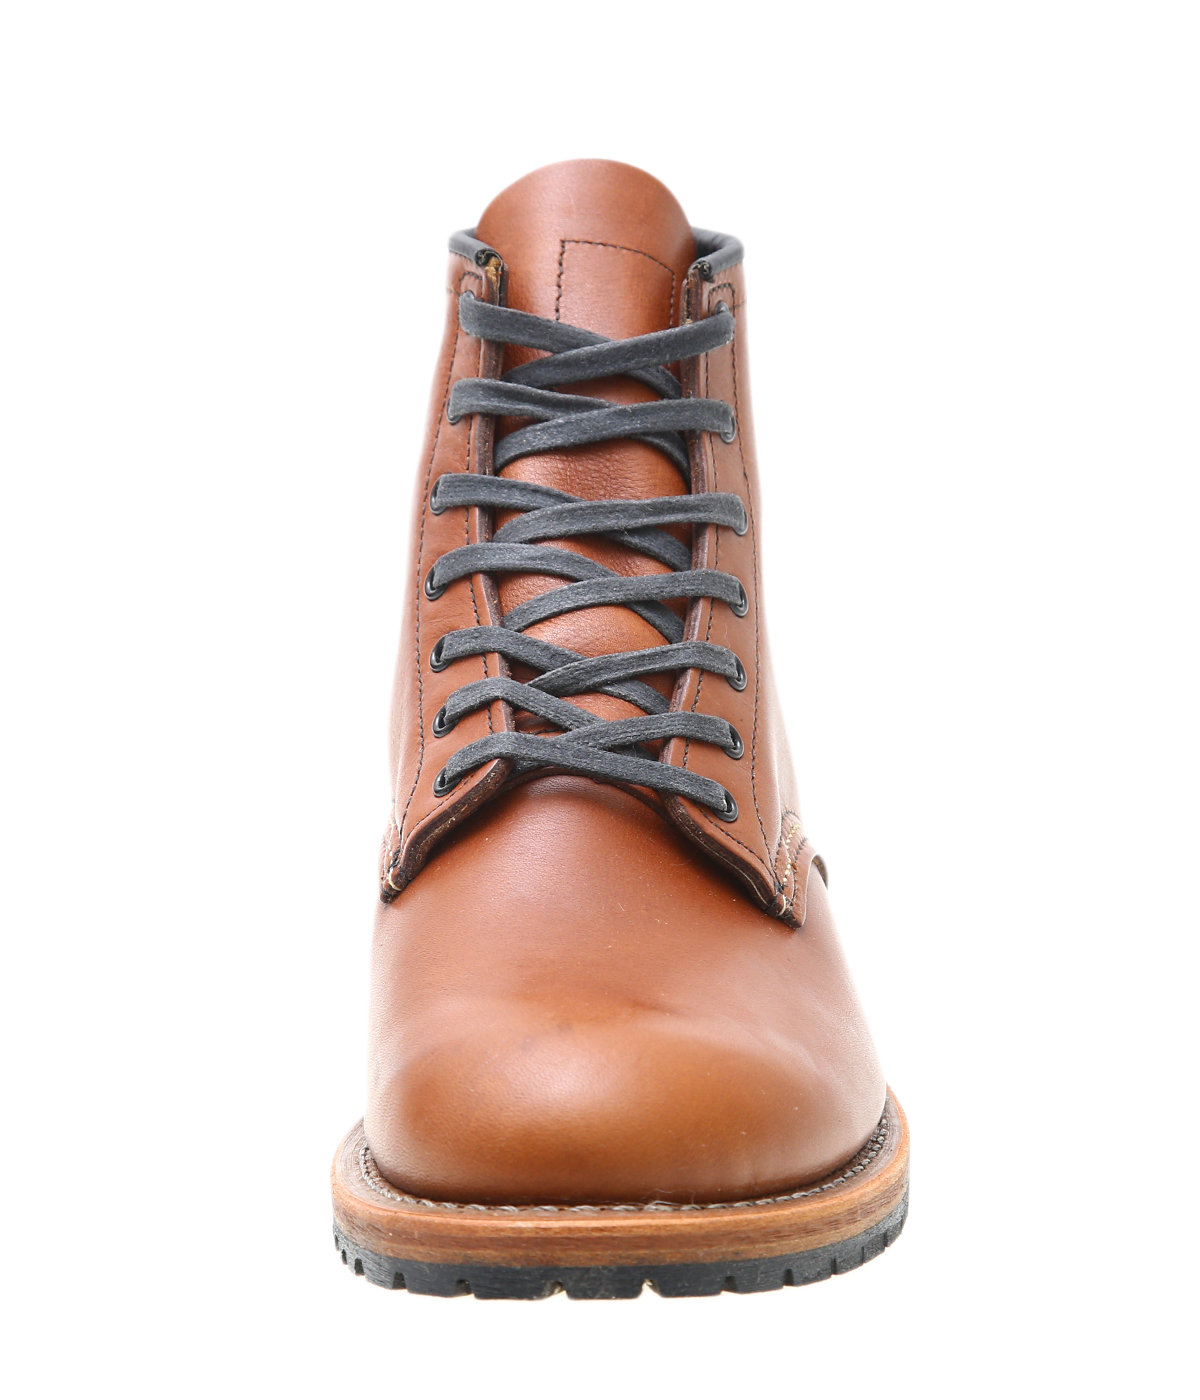 ROUND-TOE BECKMAN BOOTS STYLE NO.9016